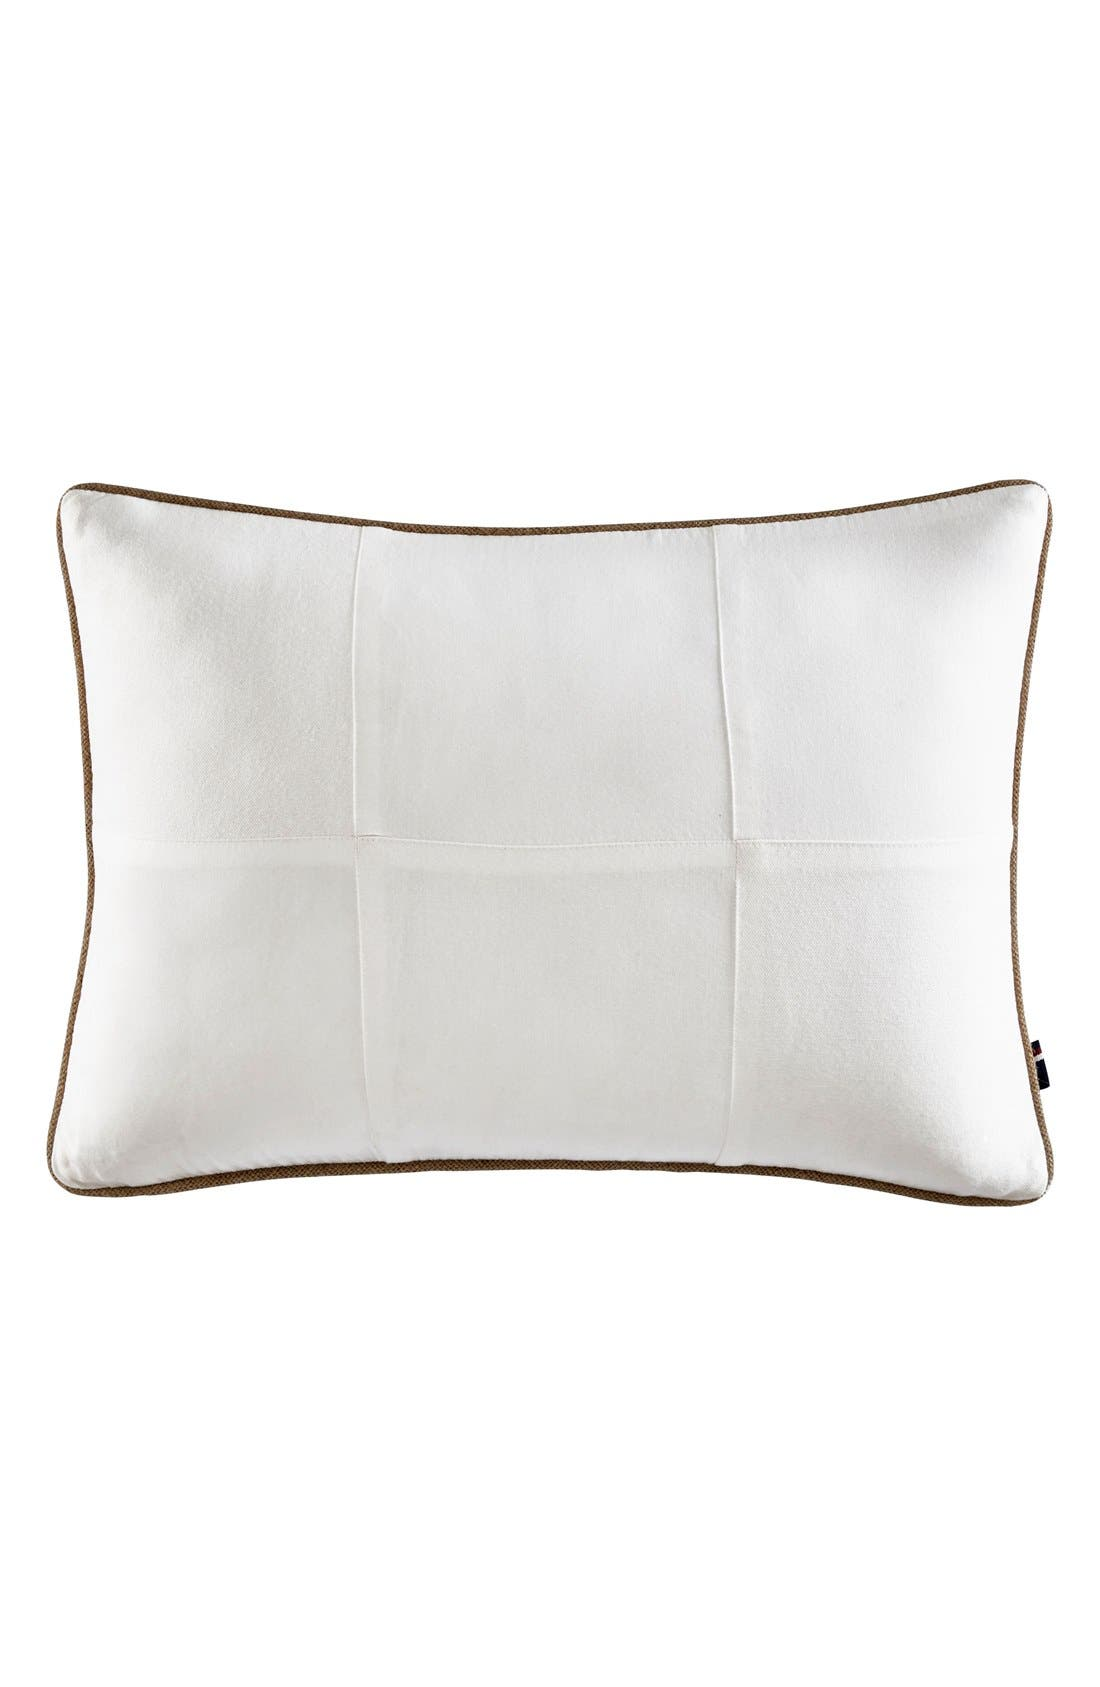 Longview Accent Pillow,                             Main thumbnail 1, color,                             White